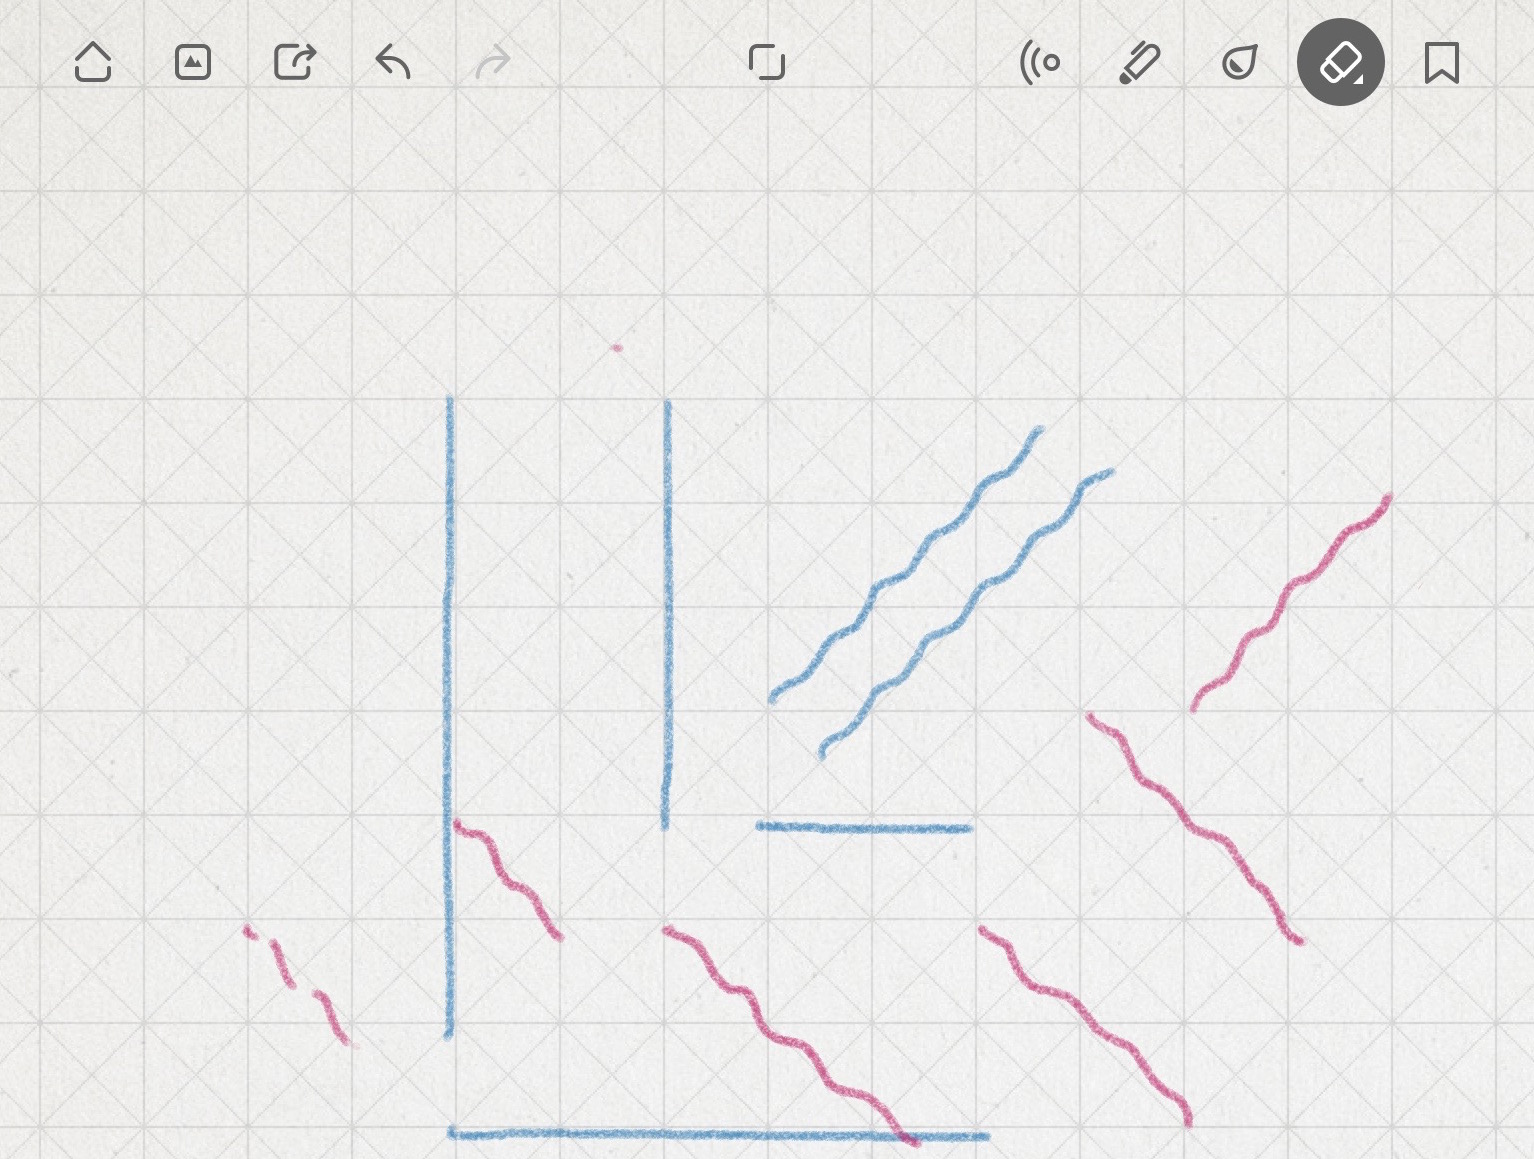 """image shows straight vertical and horizontal lines, but diagonals (drawn straight) show up """"wavy"""""""